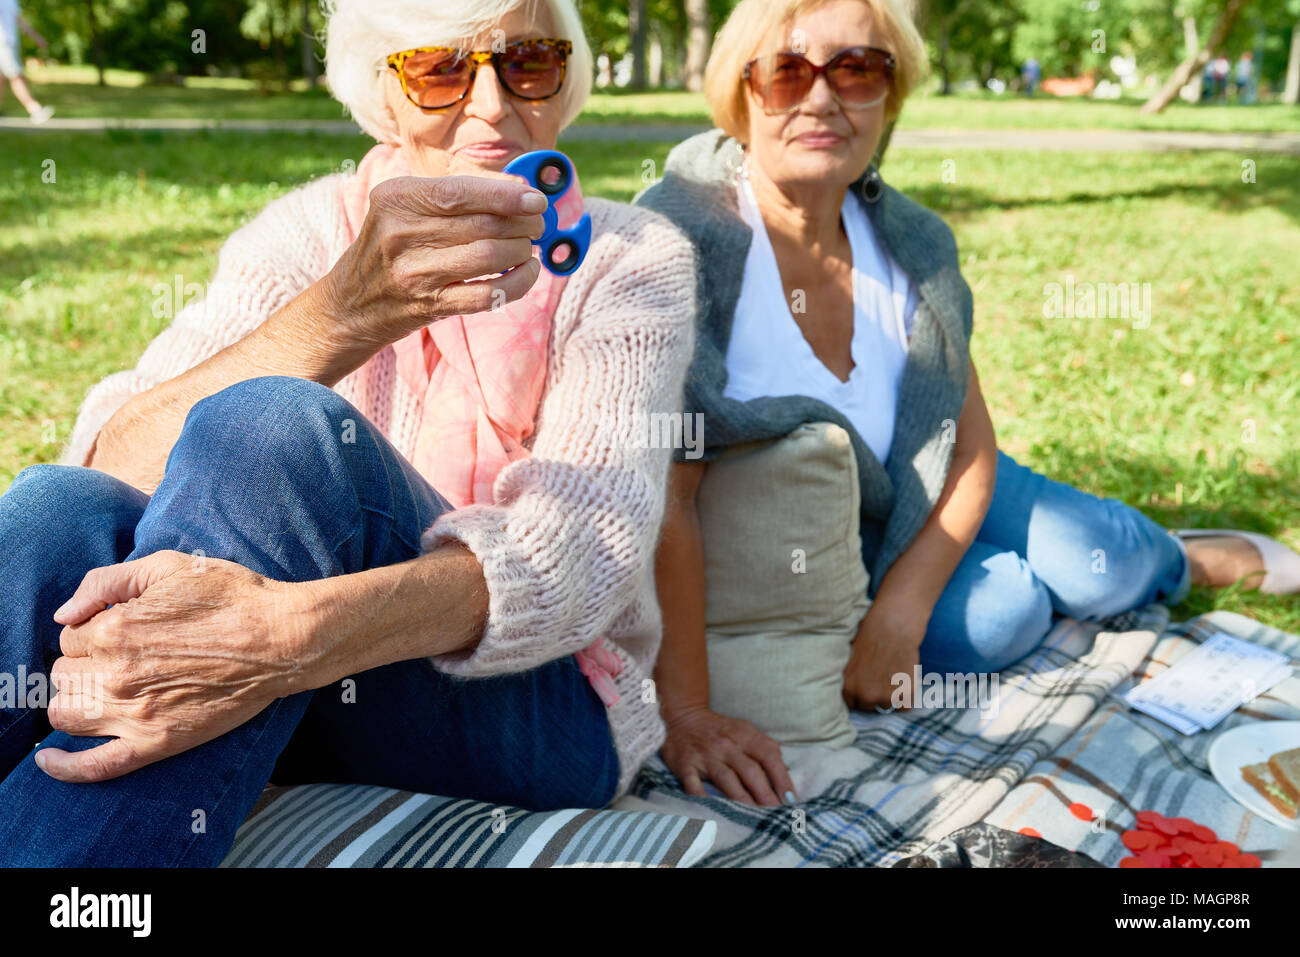 Senior Woman with Spinner - Stock Image